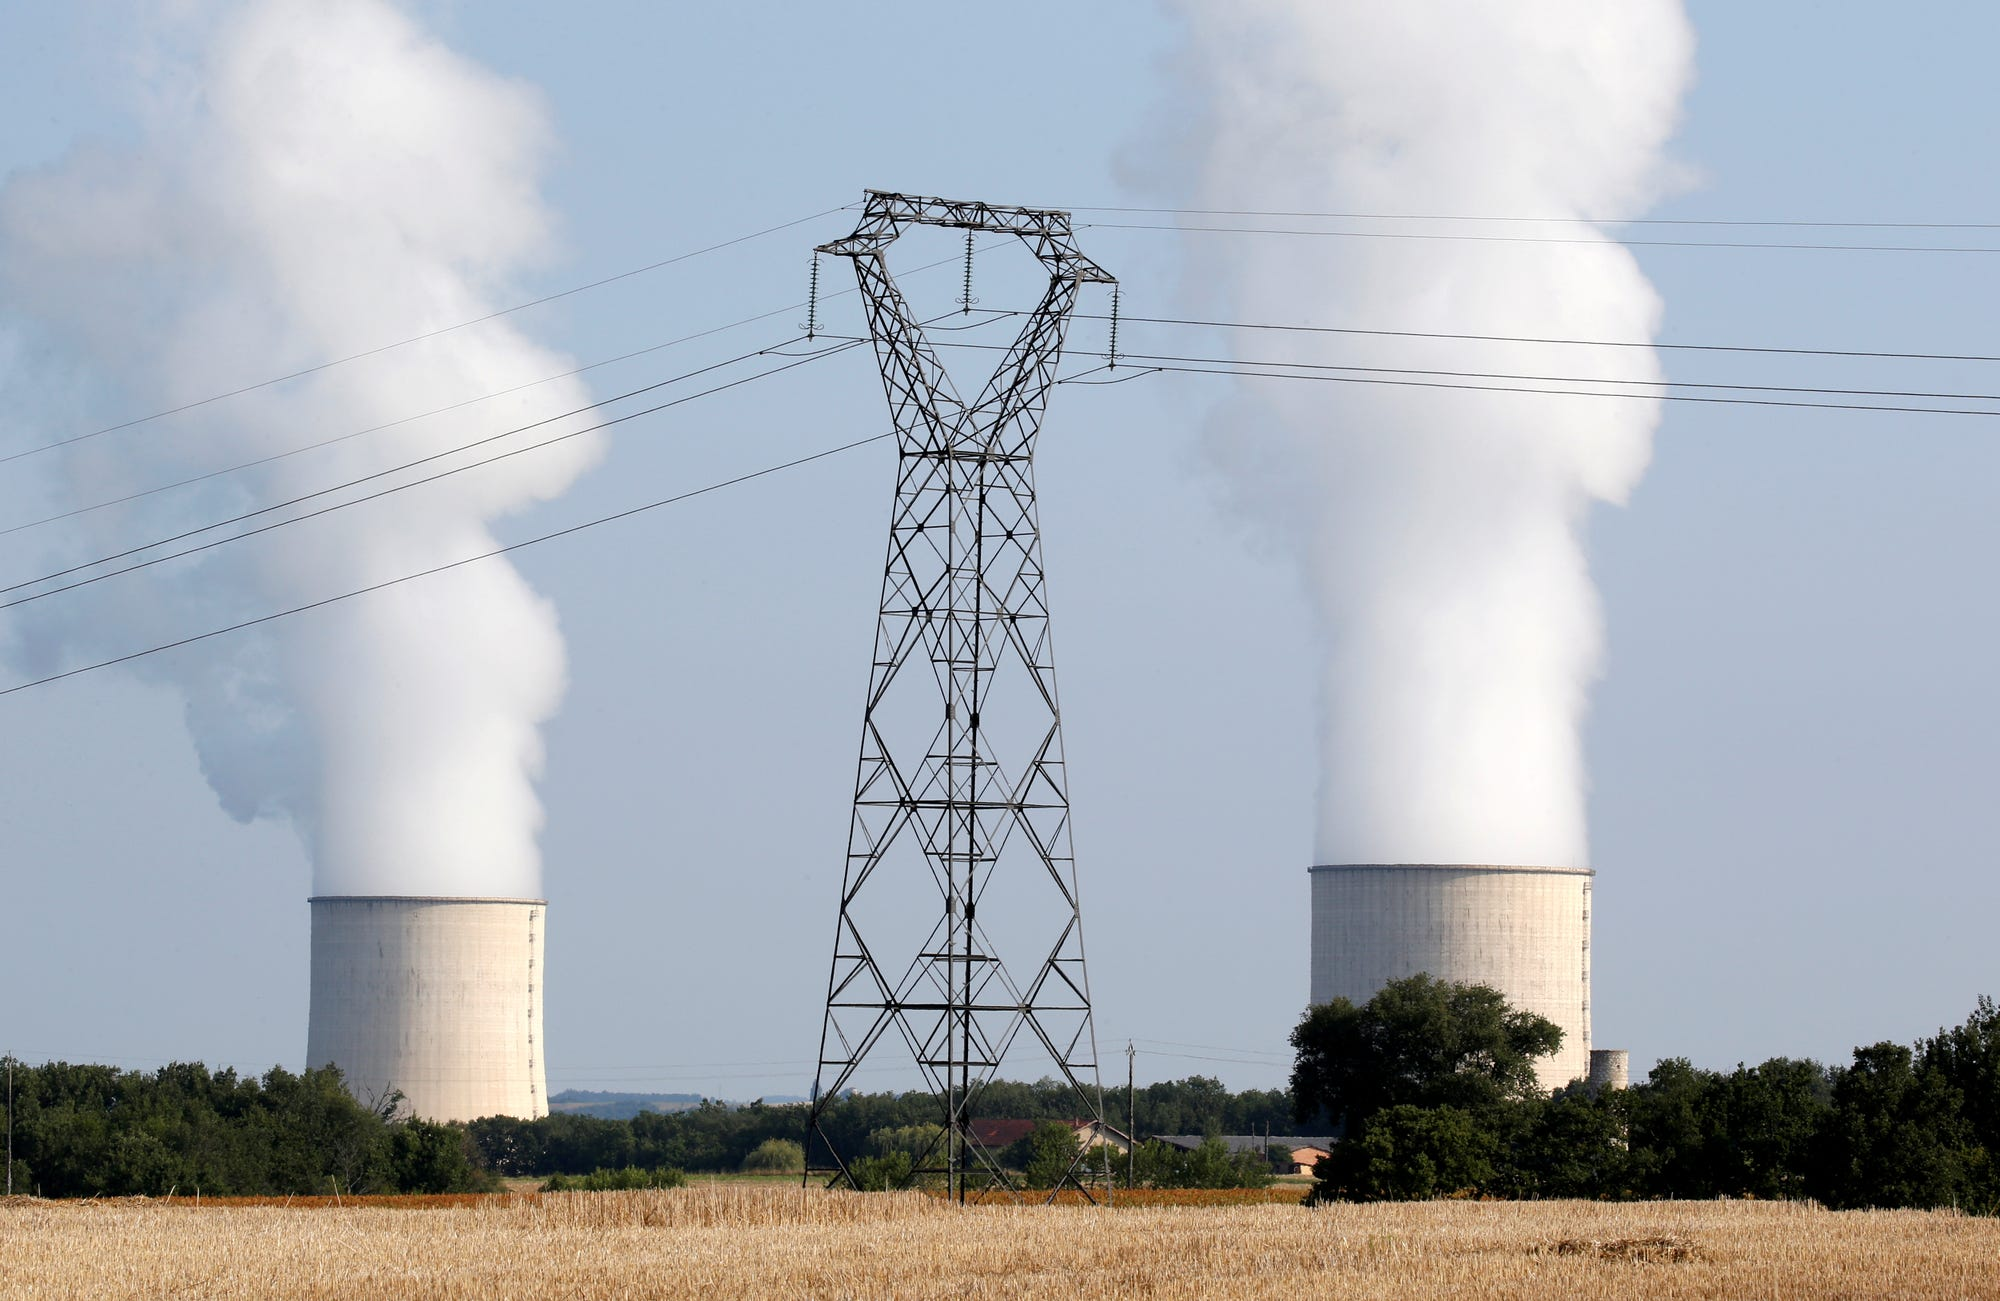 Cooling towers and high-tension electrical power lines are seen near the Golfech nuclear plant in France. Photo by Reuters.